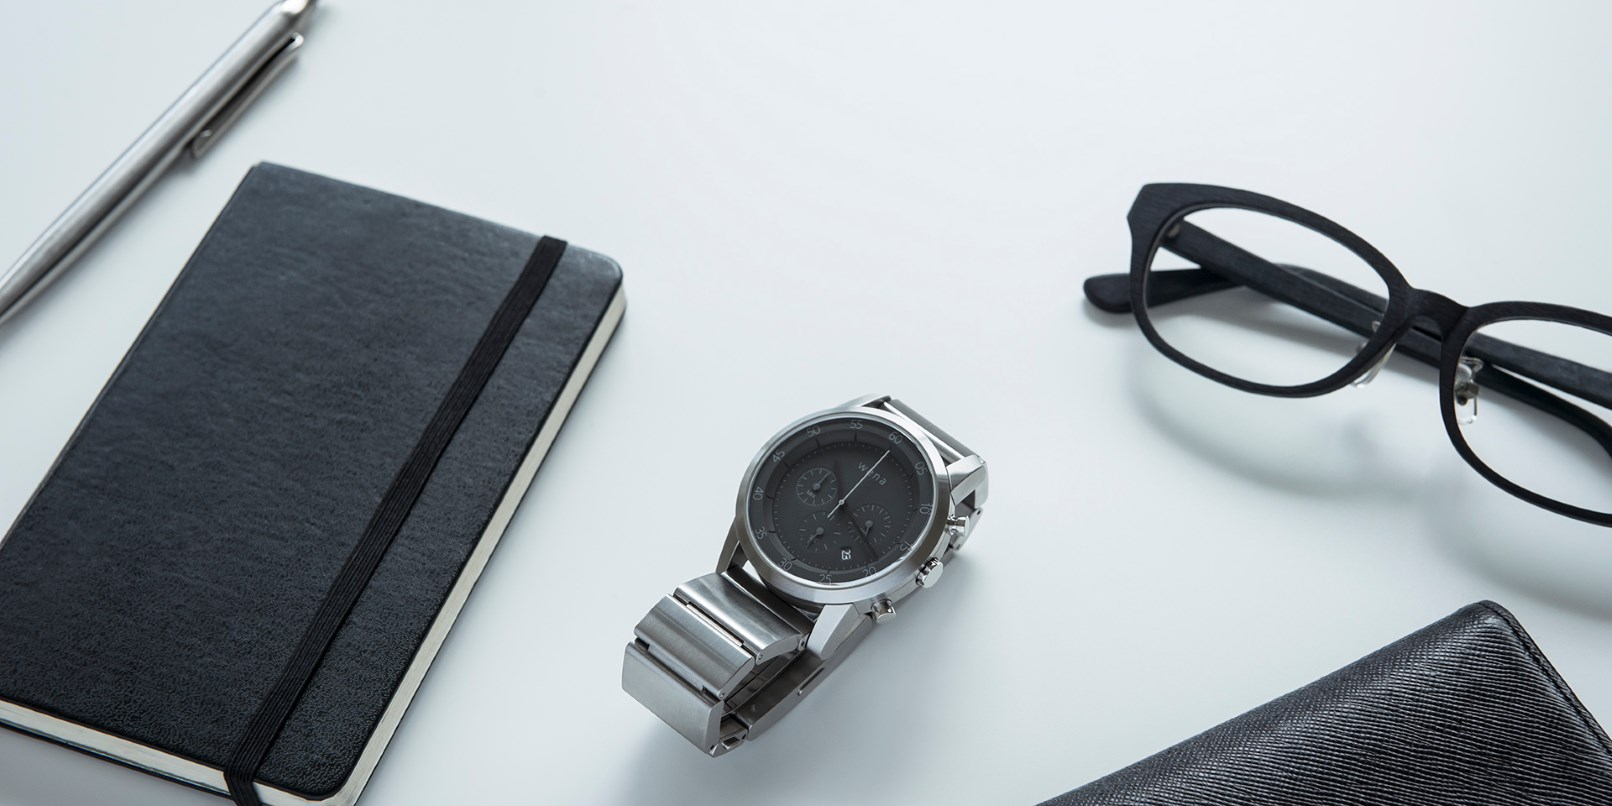 Sony's latest smartwatch doesn't have a display